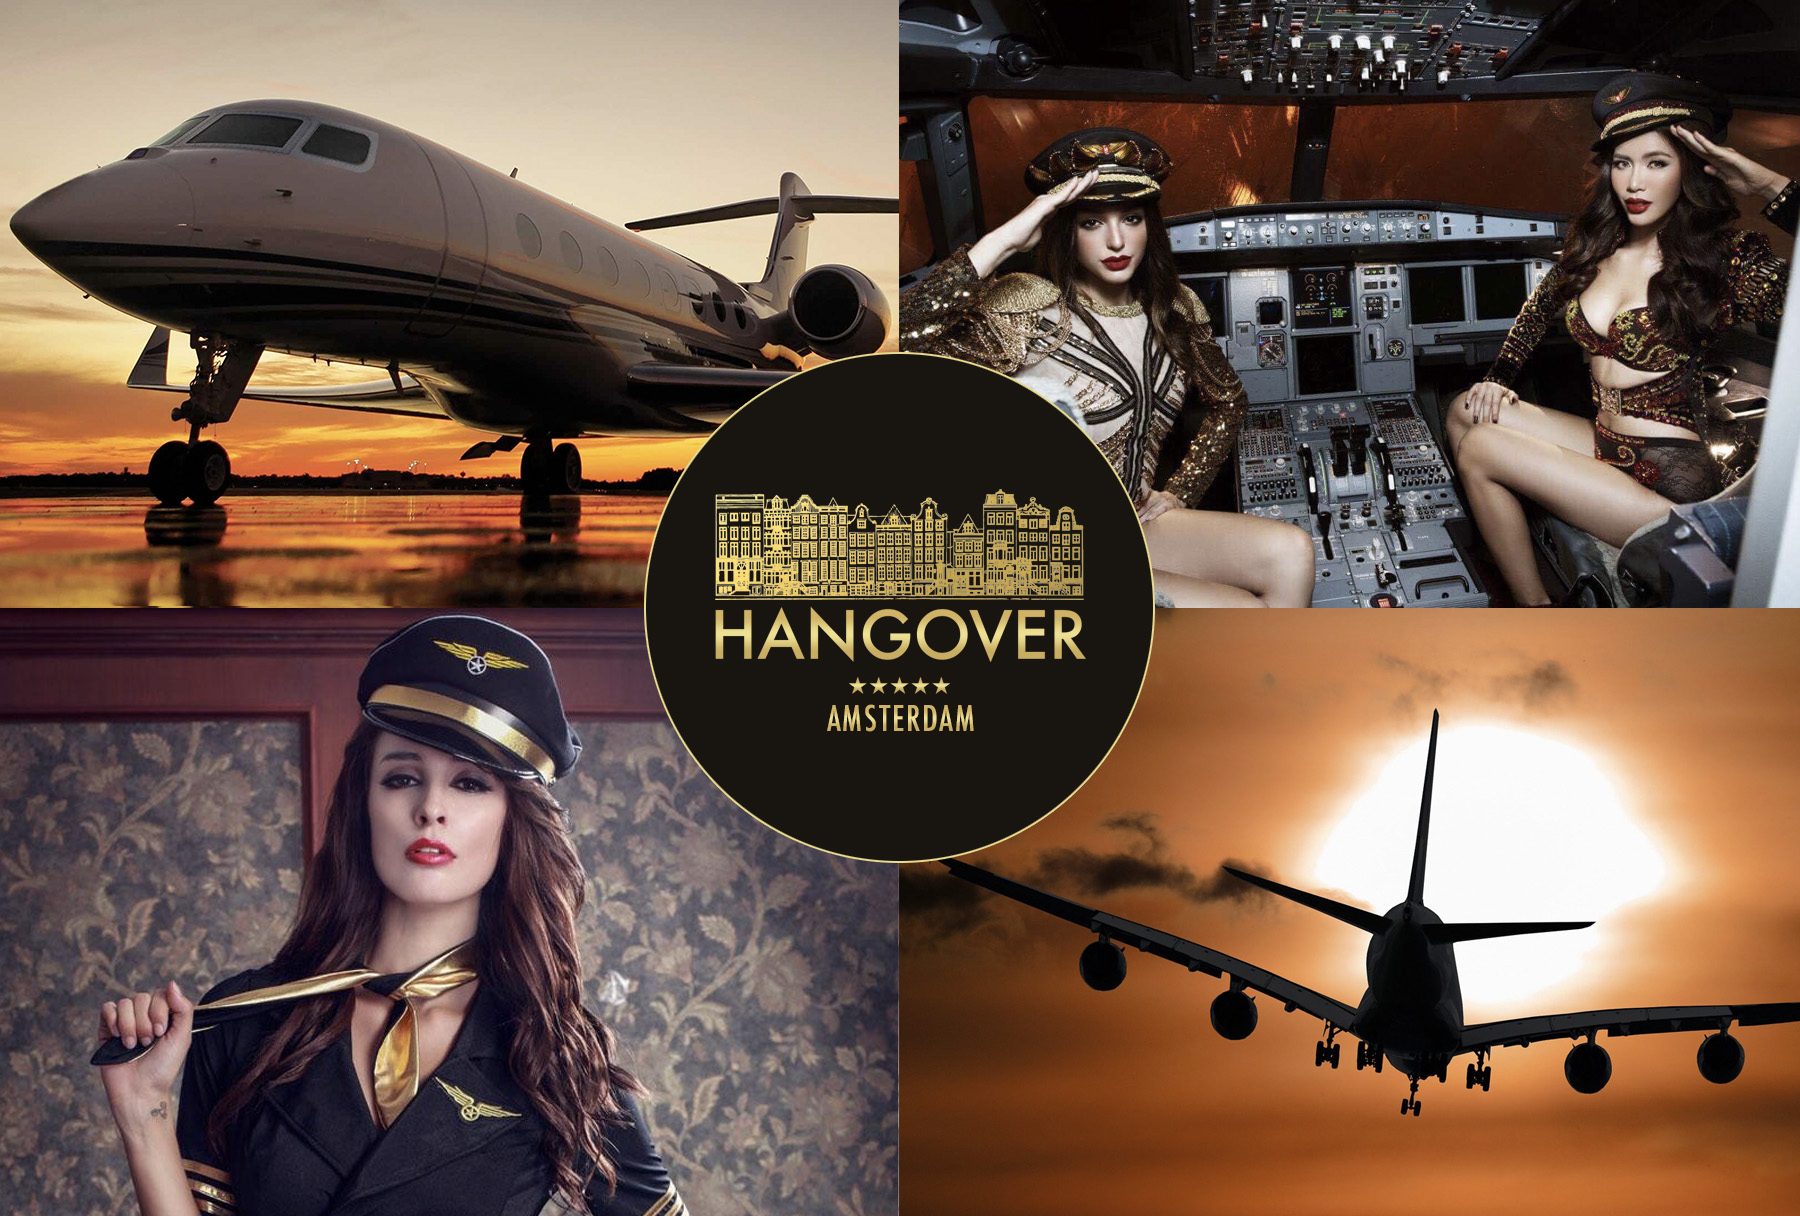 Medellin Bachelor & VIP Party Services - The Hangover Medellin